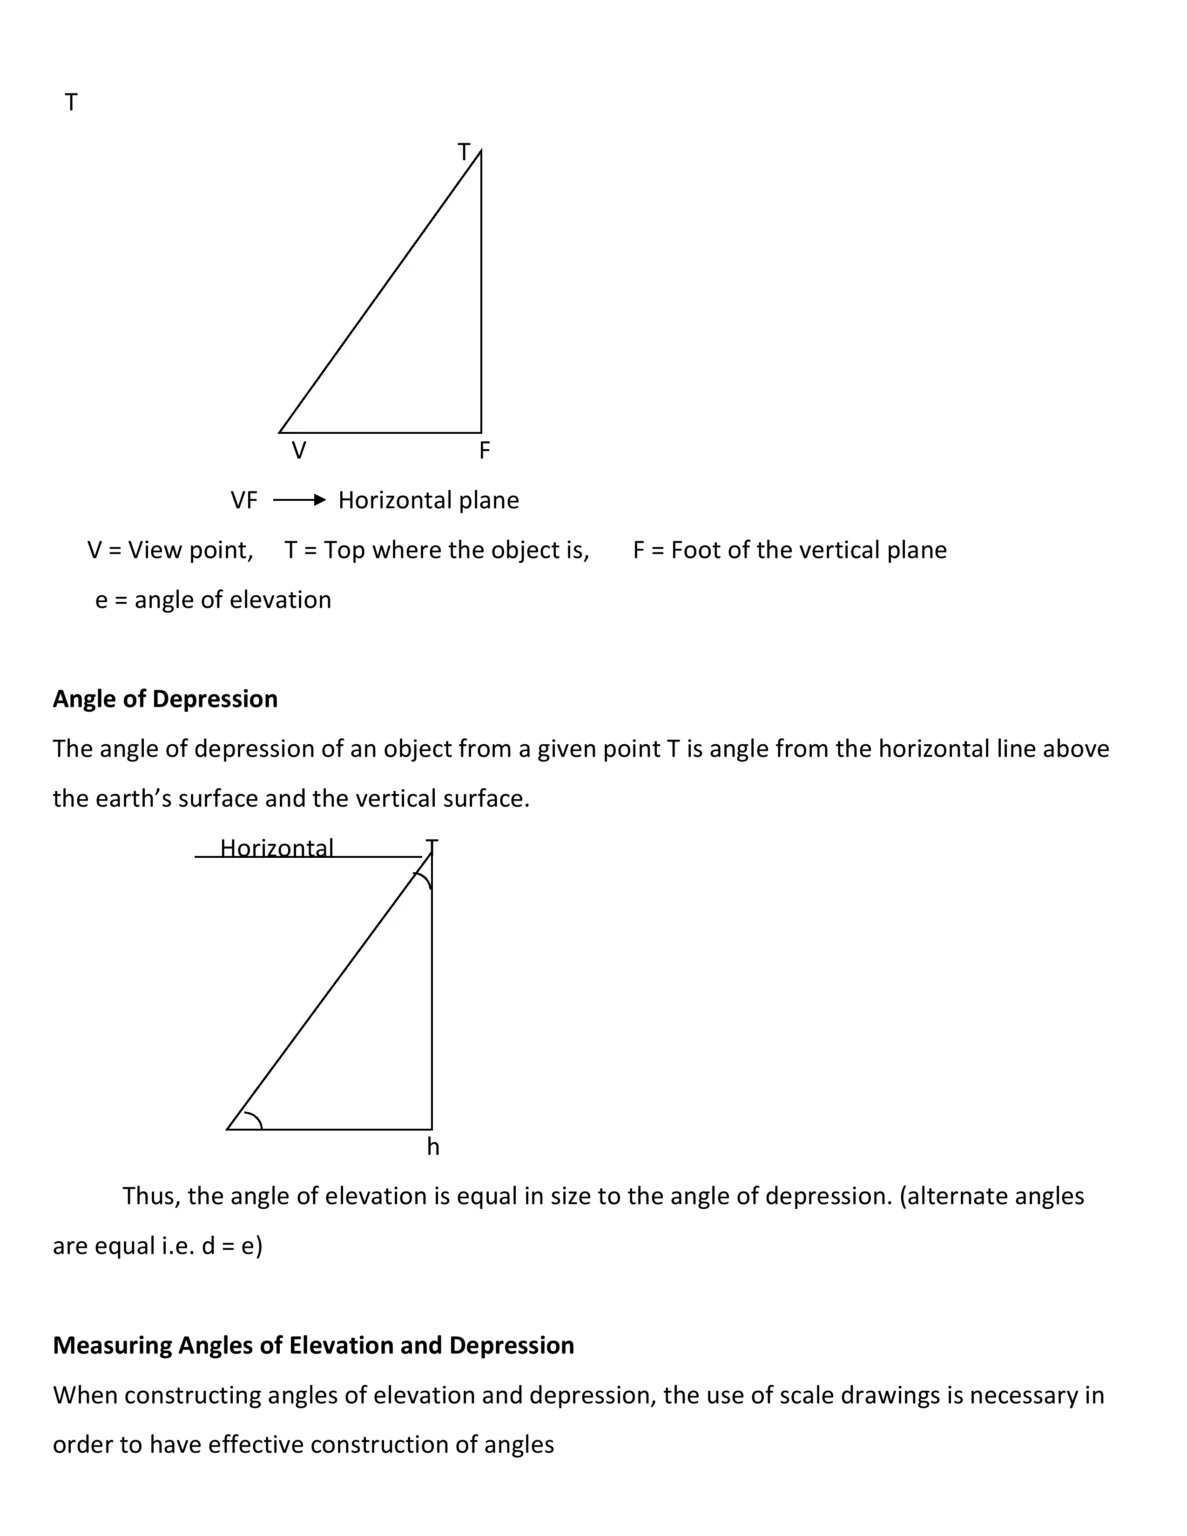 ANGLES OF ELEVATION AND DEPRESSION — SCHOOL PORTAL NG